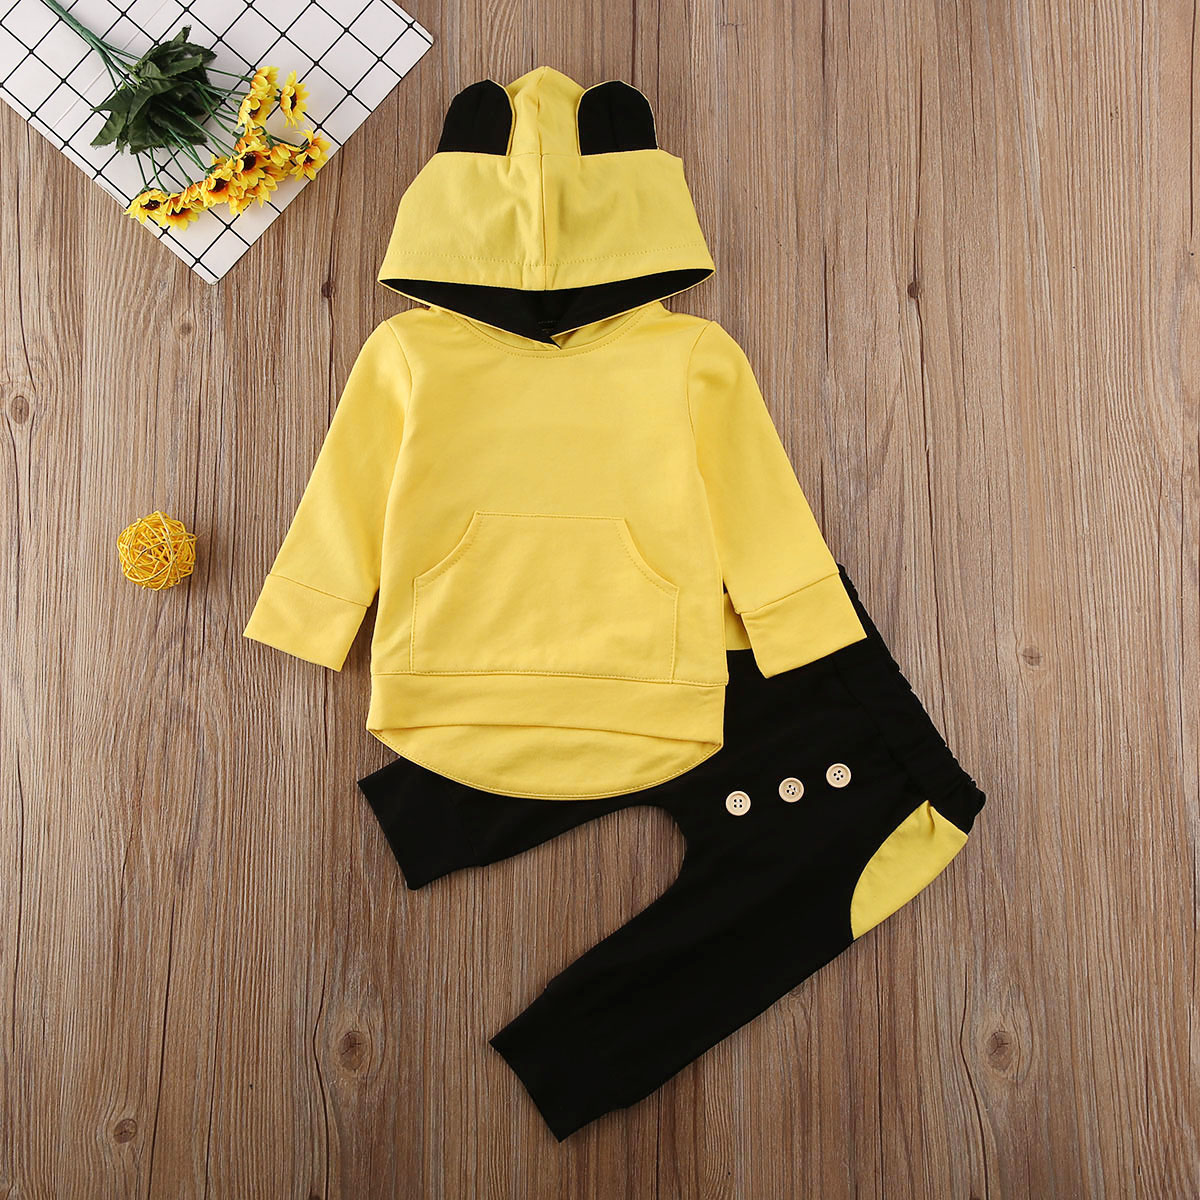 New Kids Baby Girl Boy 0-3T Spring 2020 Clothes Long Sleeve Hooded Tops+Pants Outfits